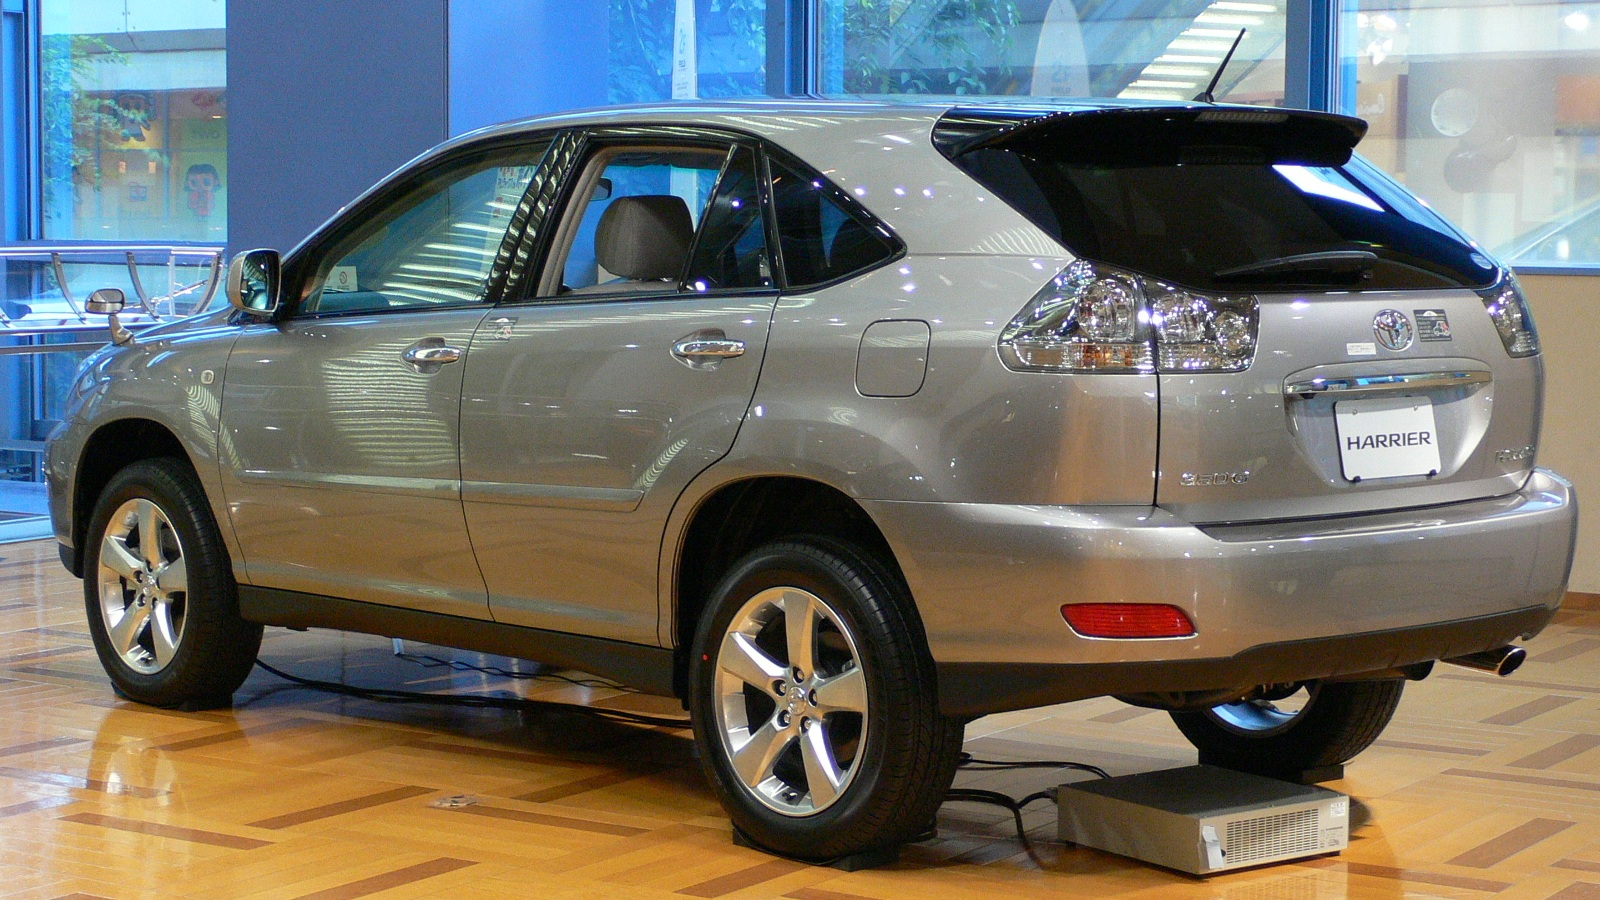 Toyota Harrier Wallpaper Magisblogautotrendmagis